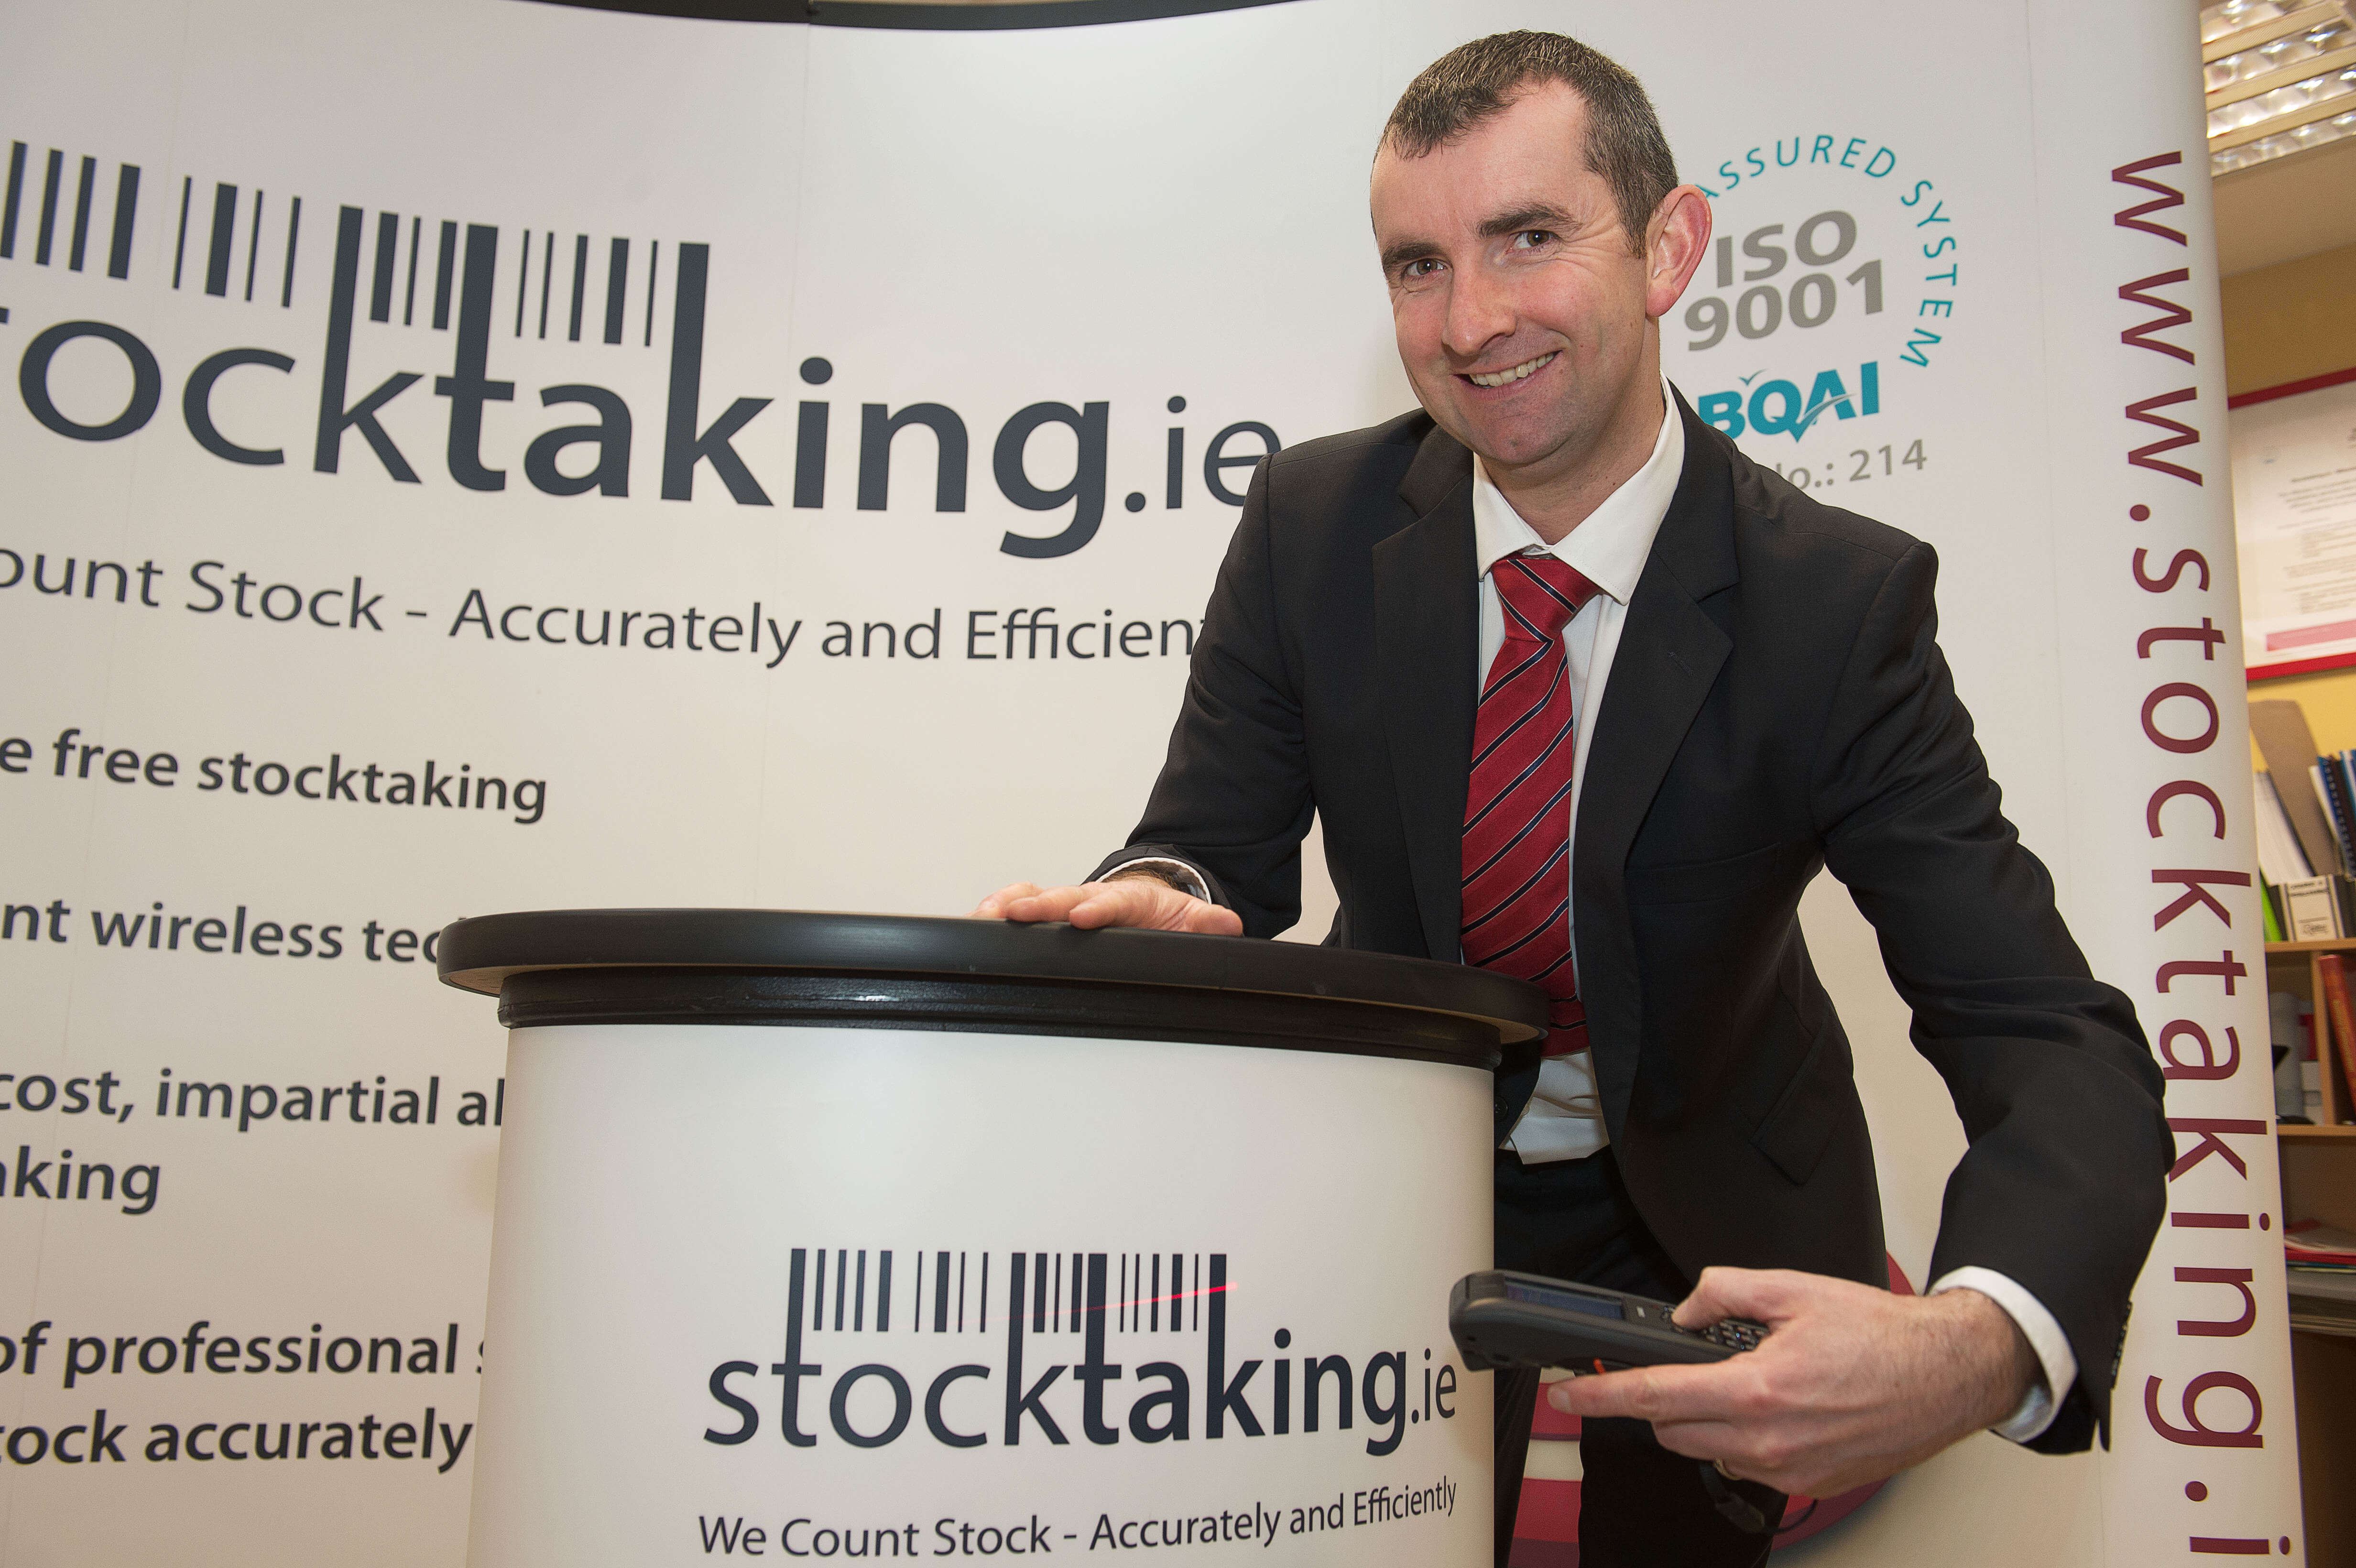 Stocktaking counting accurate inventory